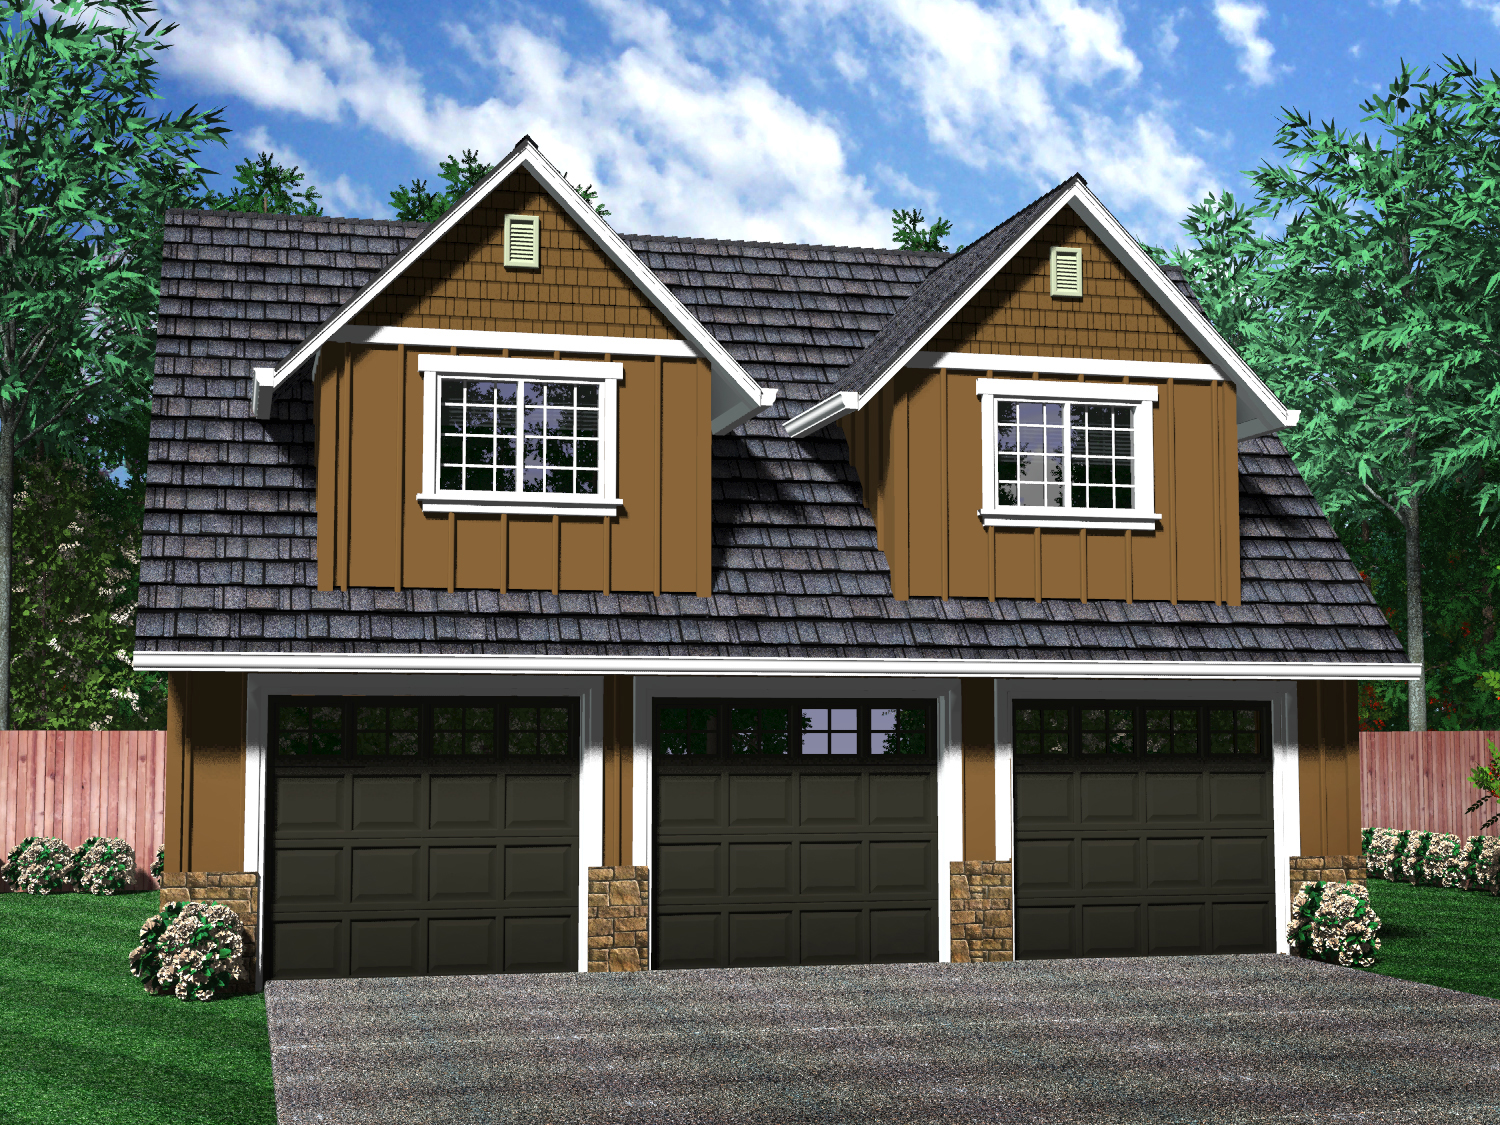 Detached garages for Garage with apartment above kits